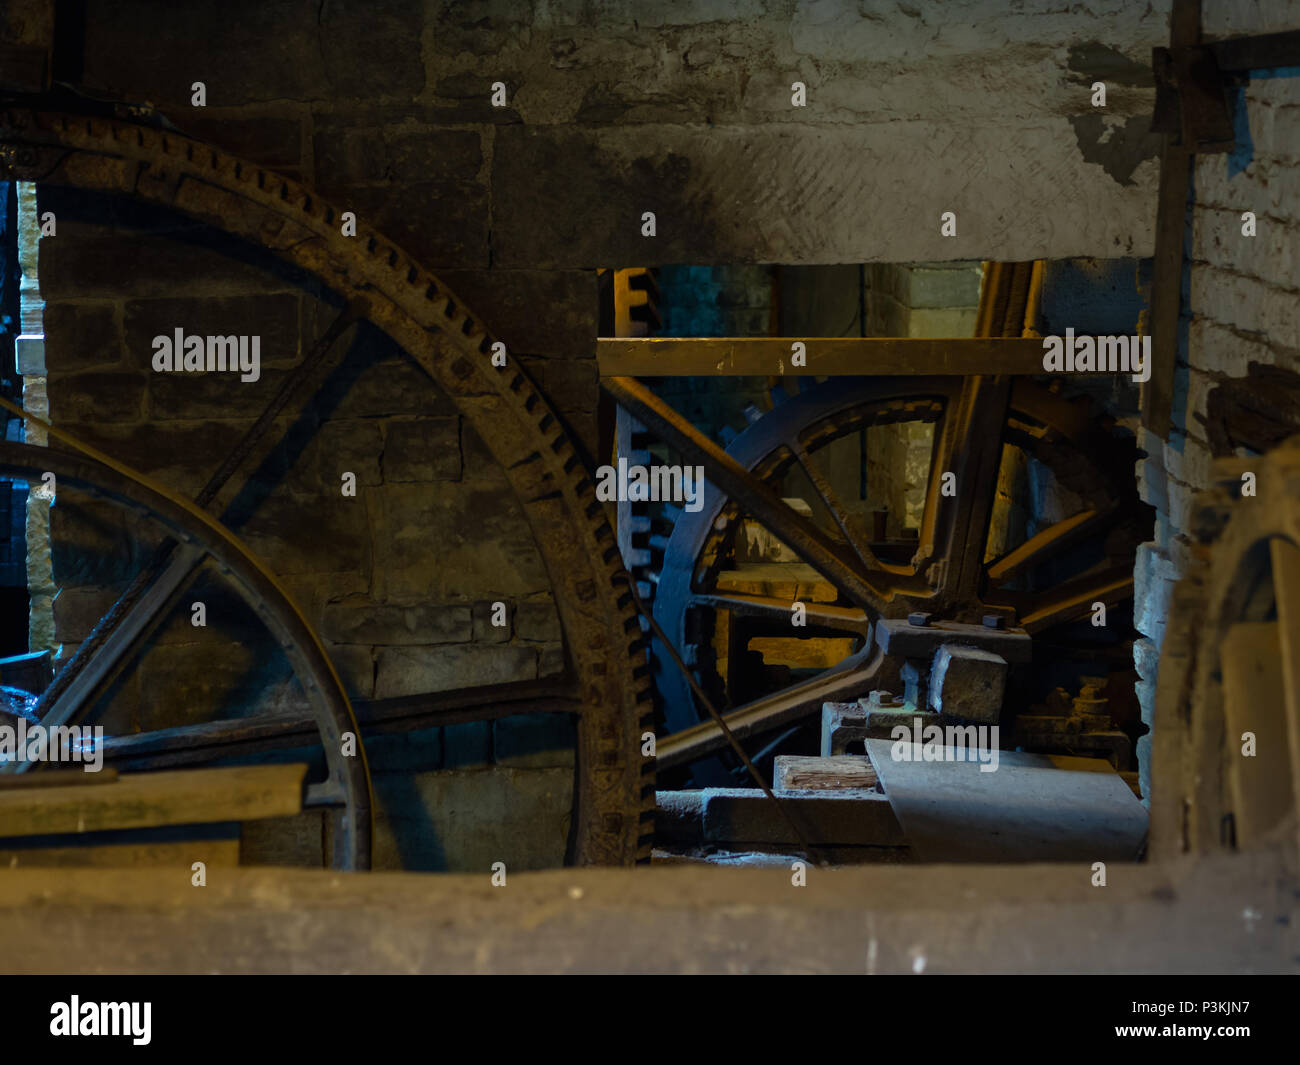 Rustic scene with giant cogwheels and gears - Stock Image